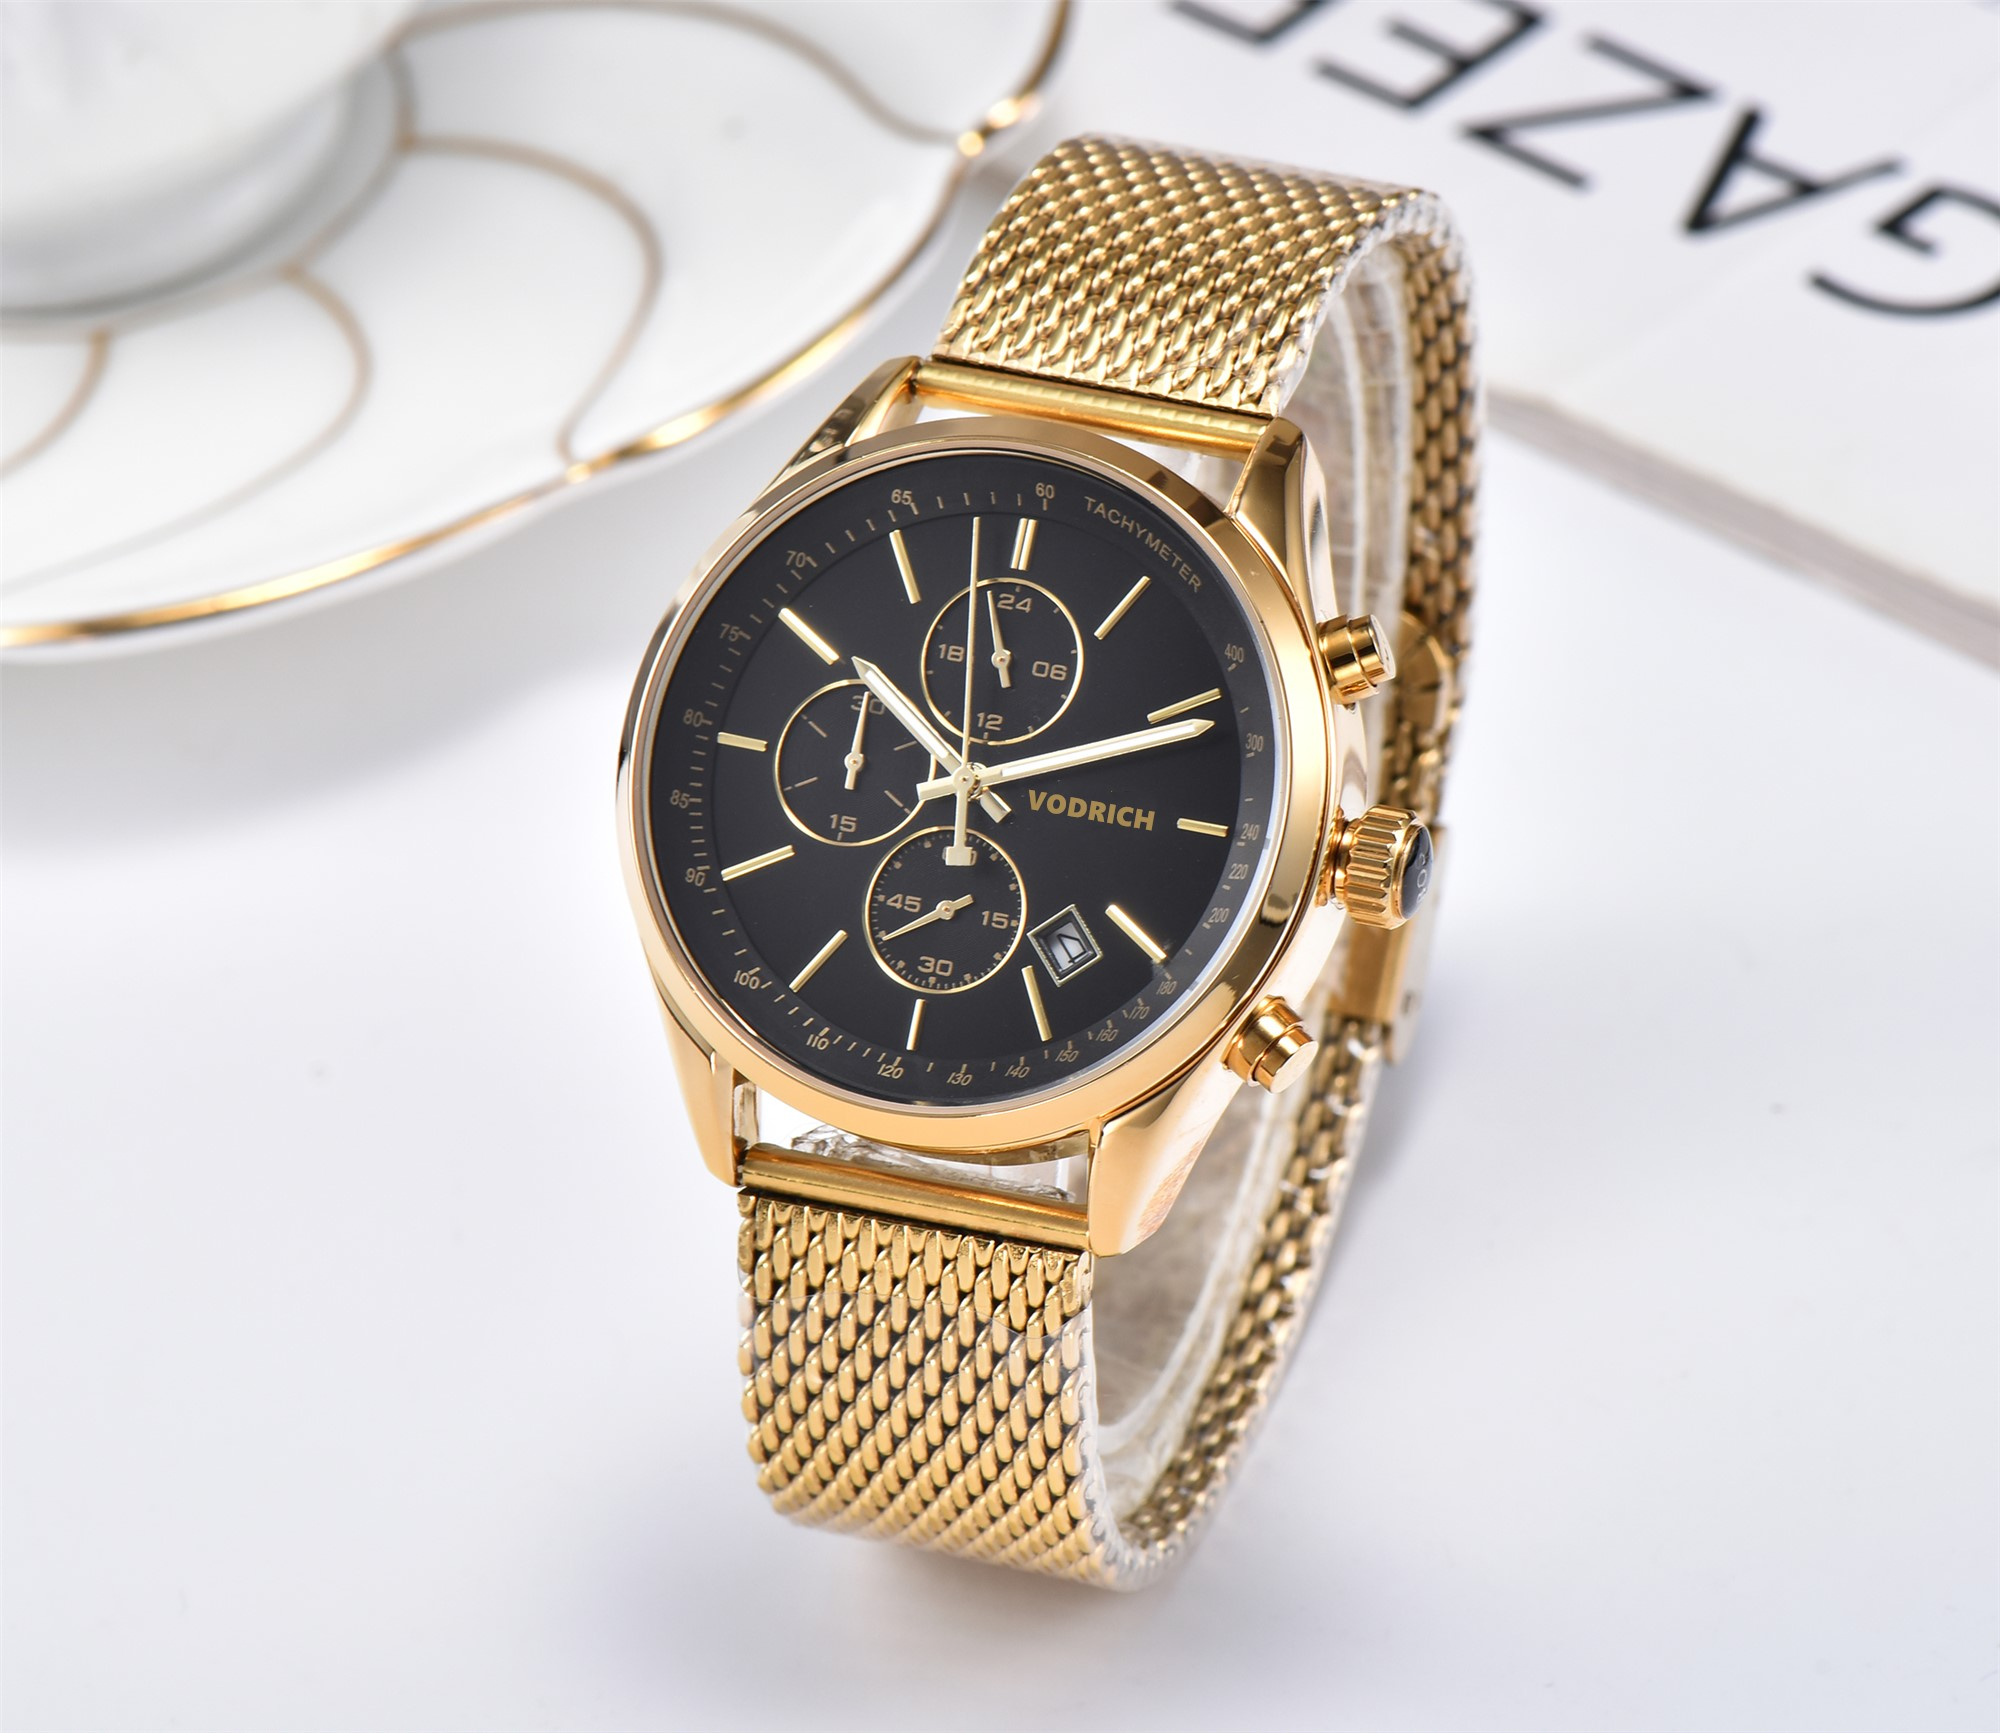 Men's Six-pin Multi-function Watch With Stainless Steel Strap.  A Must For 2020 Fashion Men.